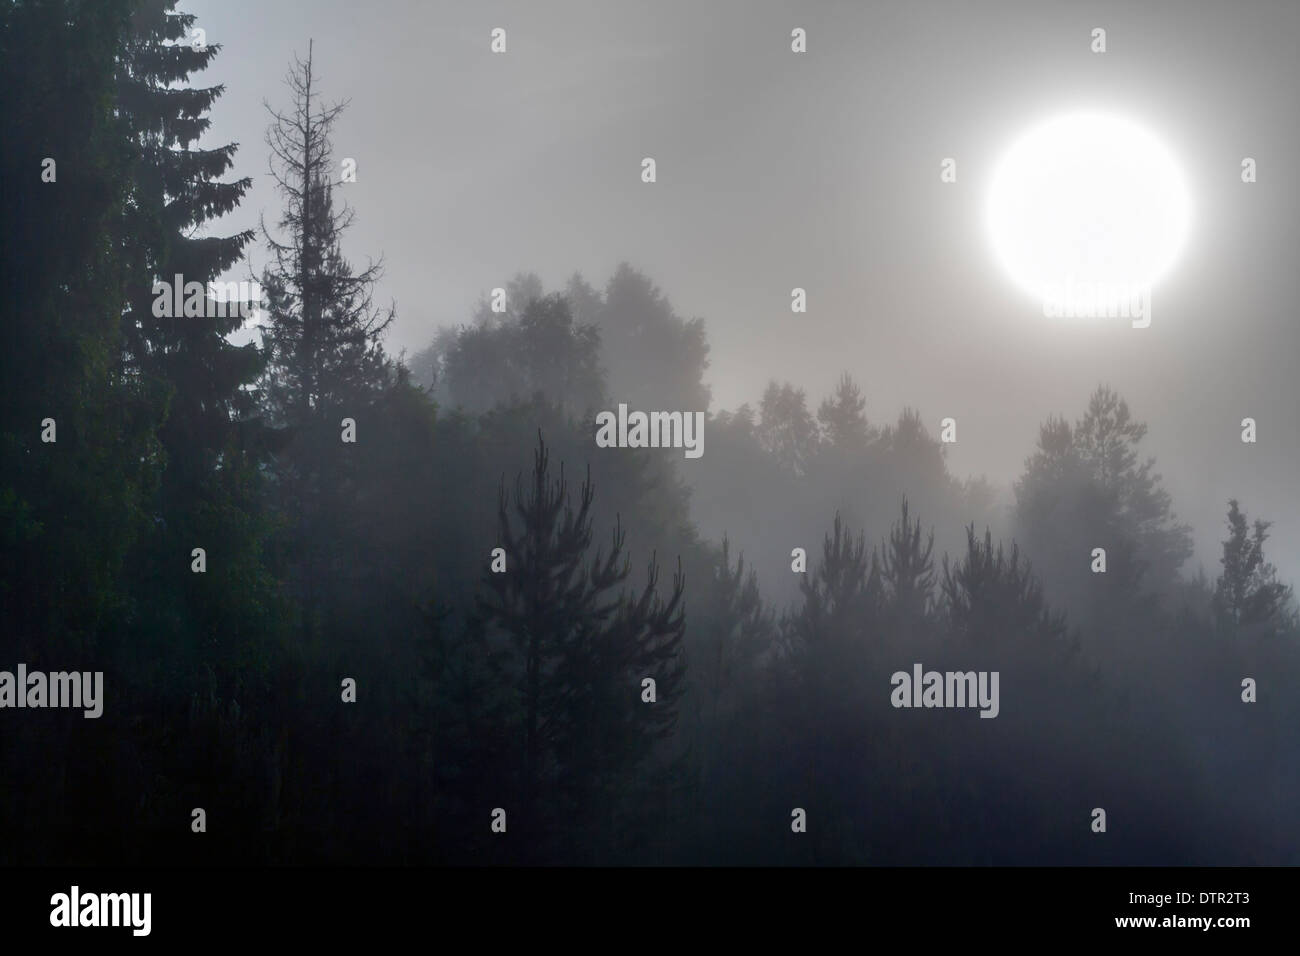 Morning Sun Through Thick Fog with Fir Trees Silhouetted in Foreground - Stock Image